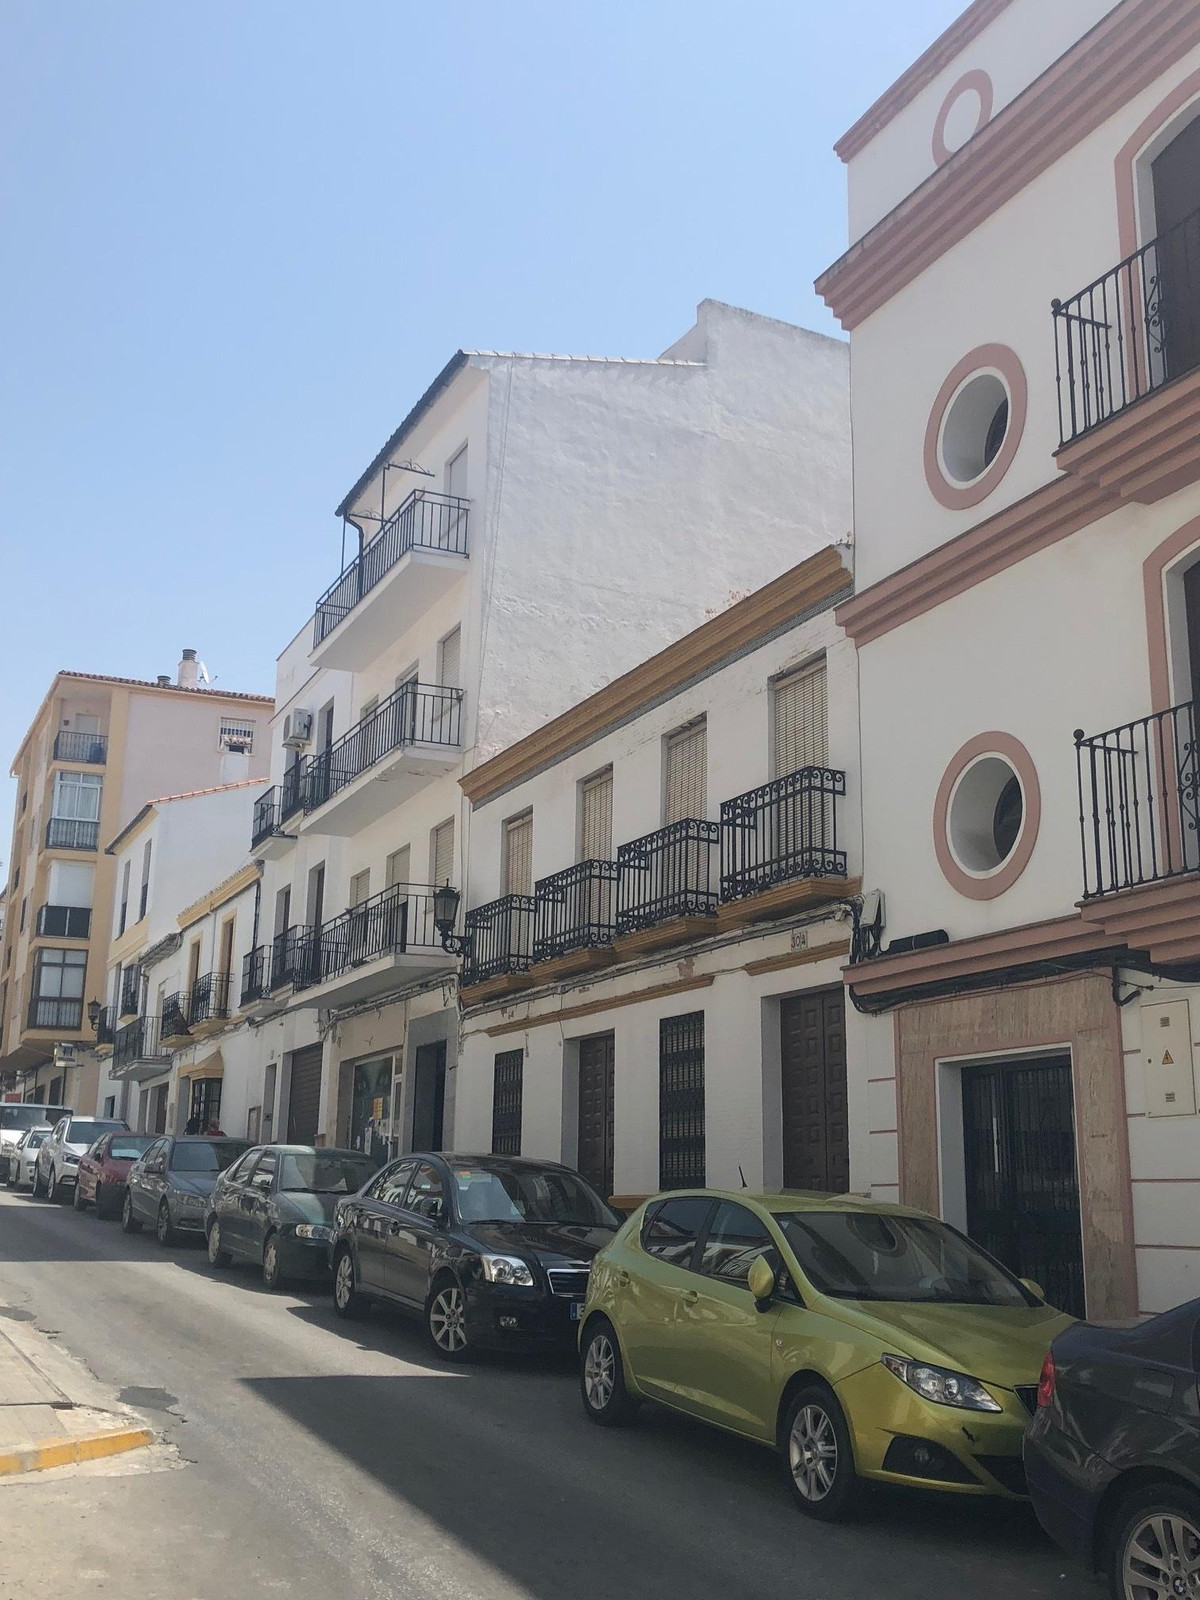 5 Bedroom Townhouse for sale Ronda